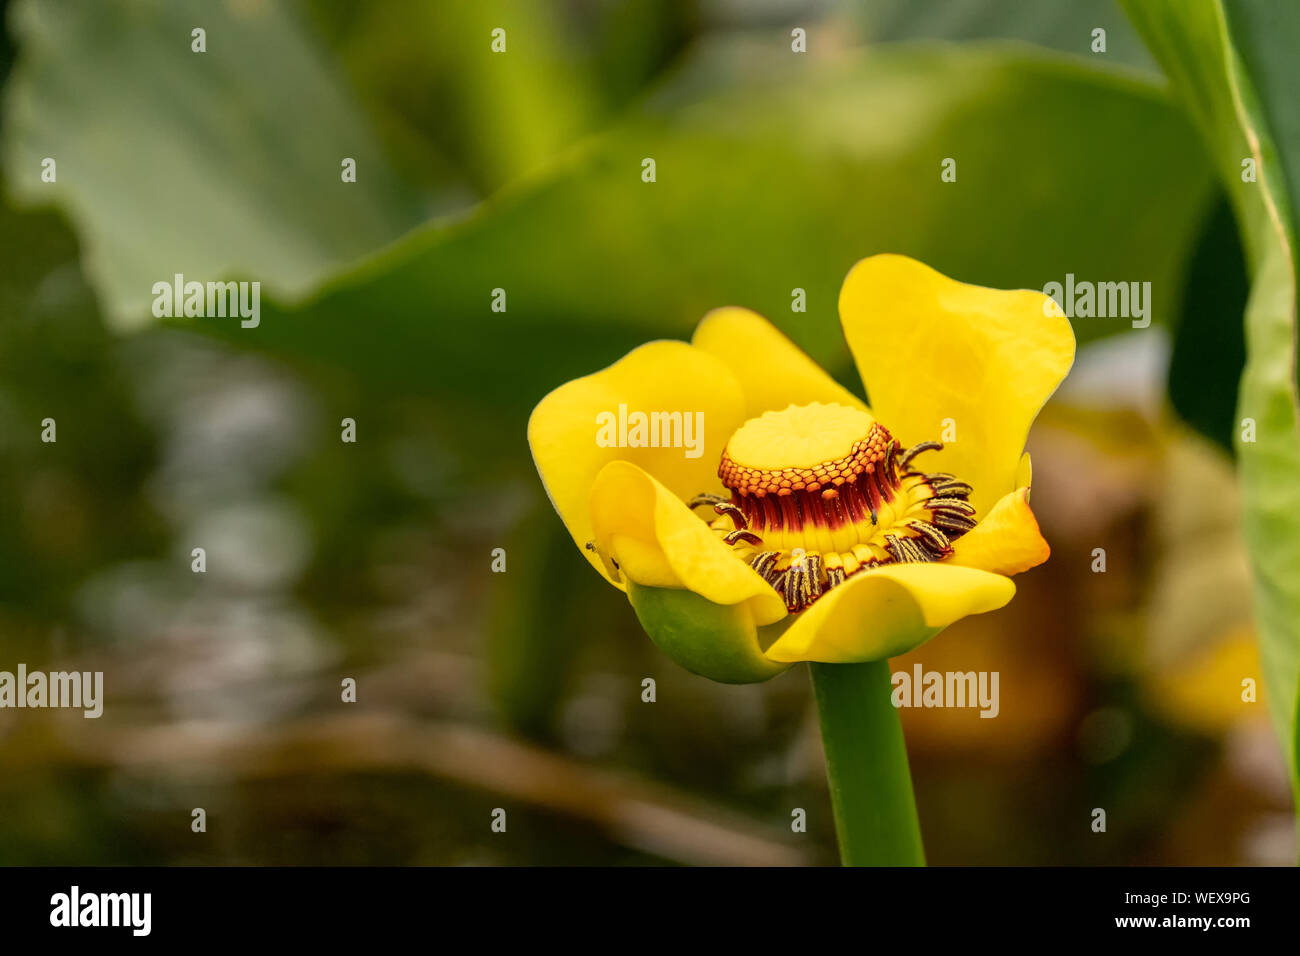 Issaquah, Washington, USA.  The single, yellow, fleshy flower of Nuphar lutea, with its prominent, lobed stigma is the best known feature.  The leaves Stock Photo